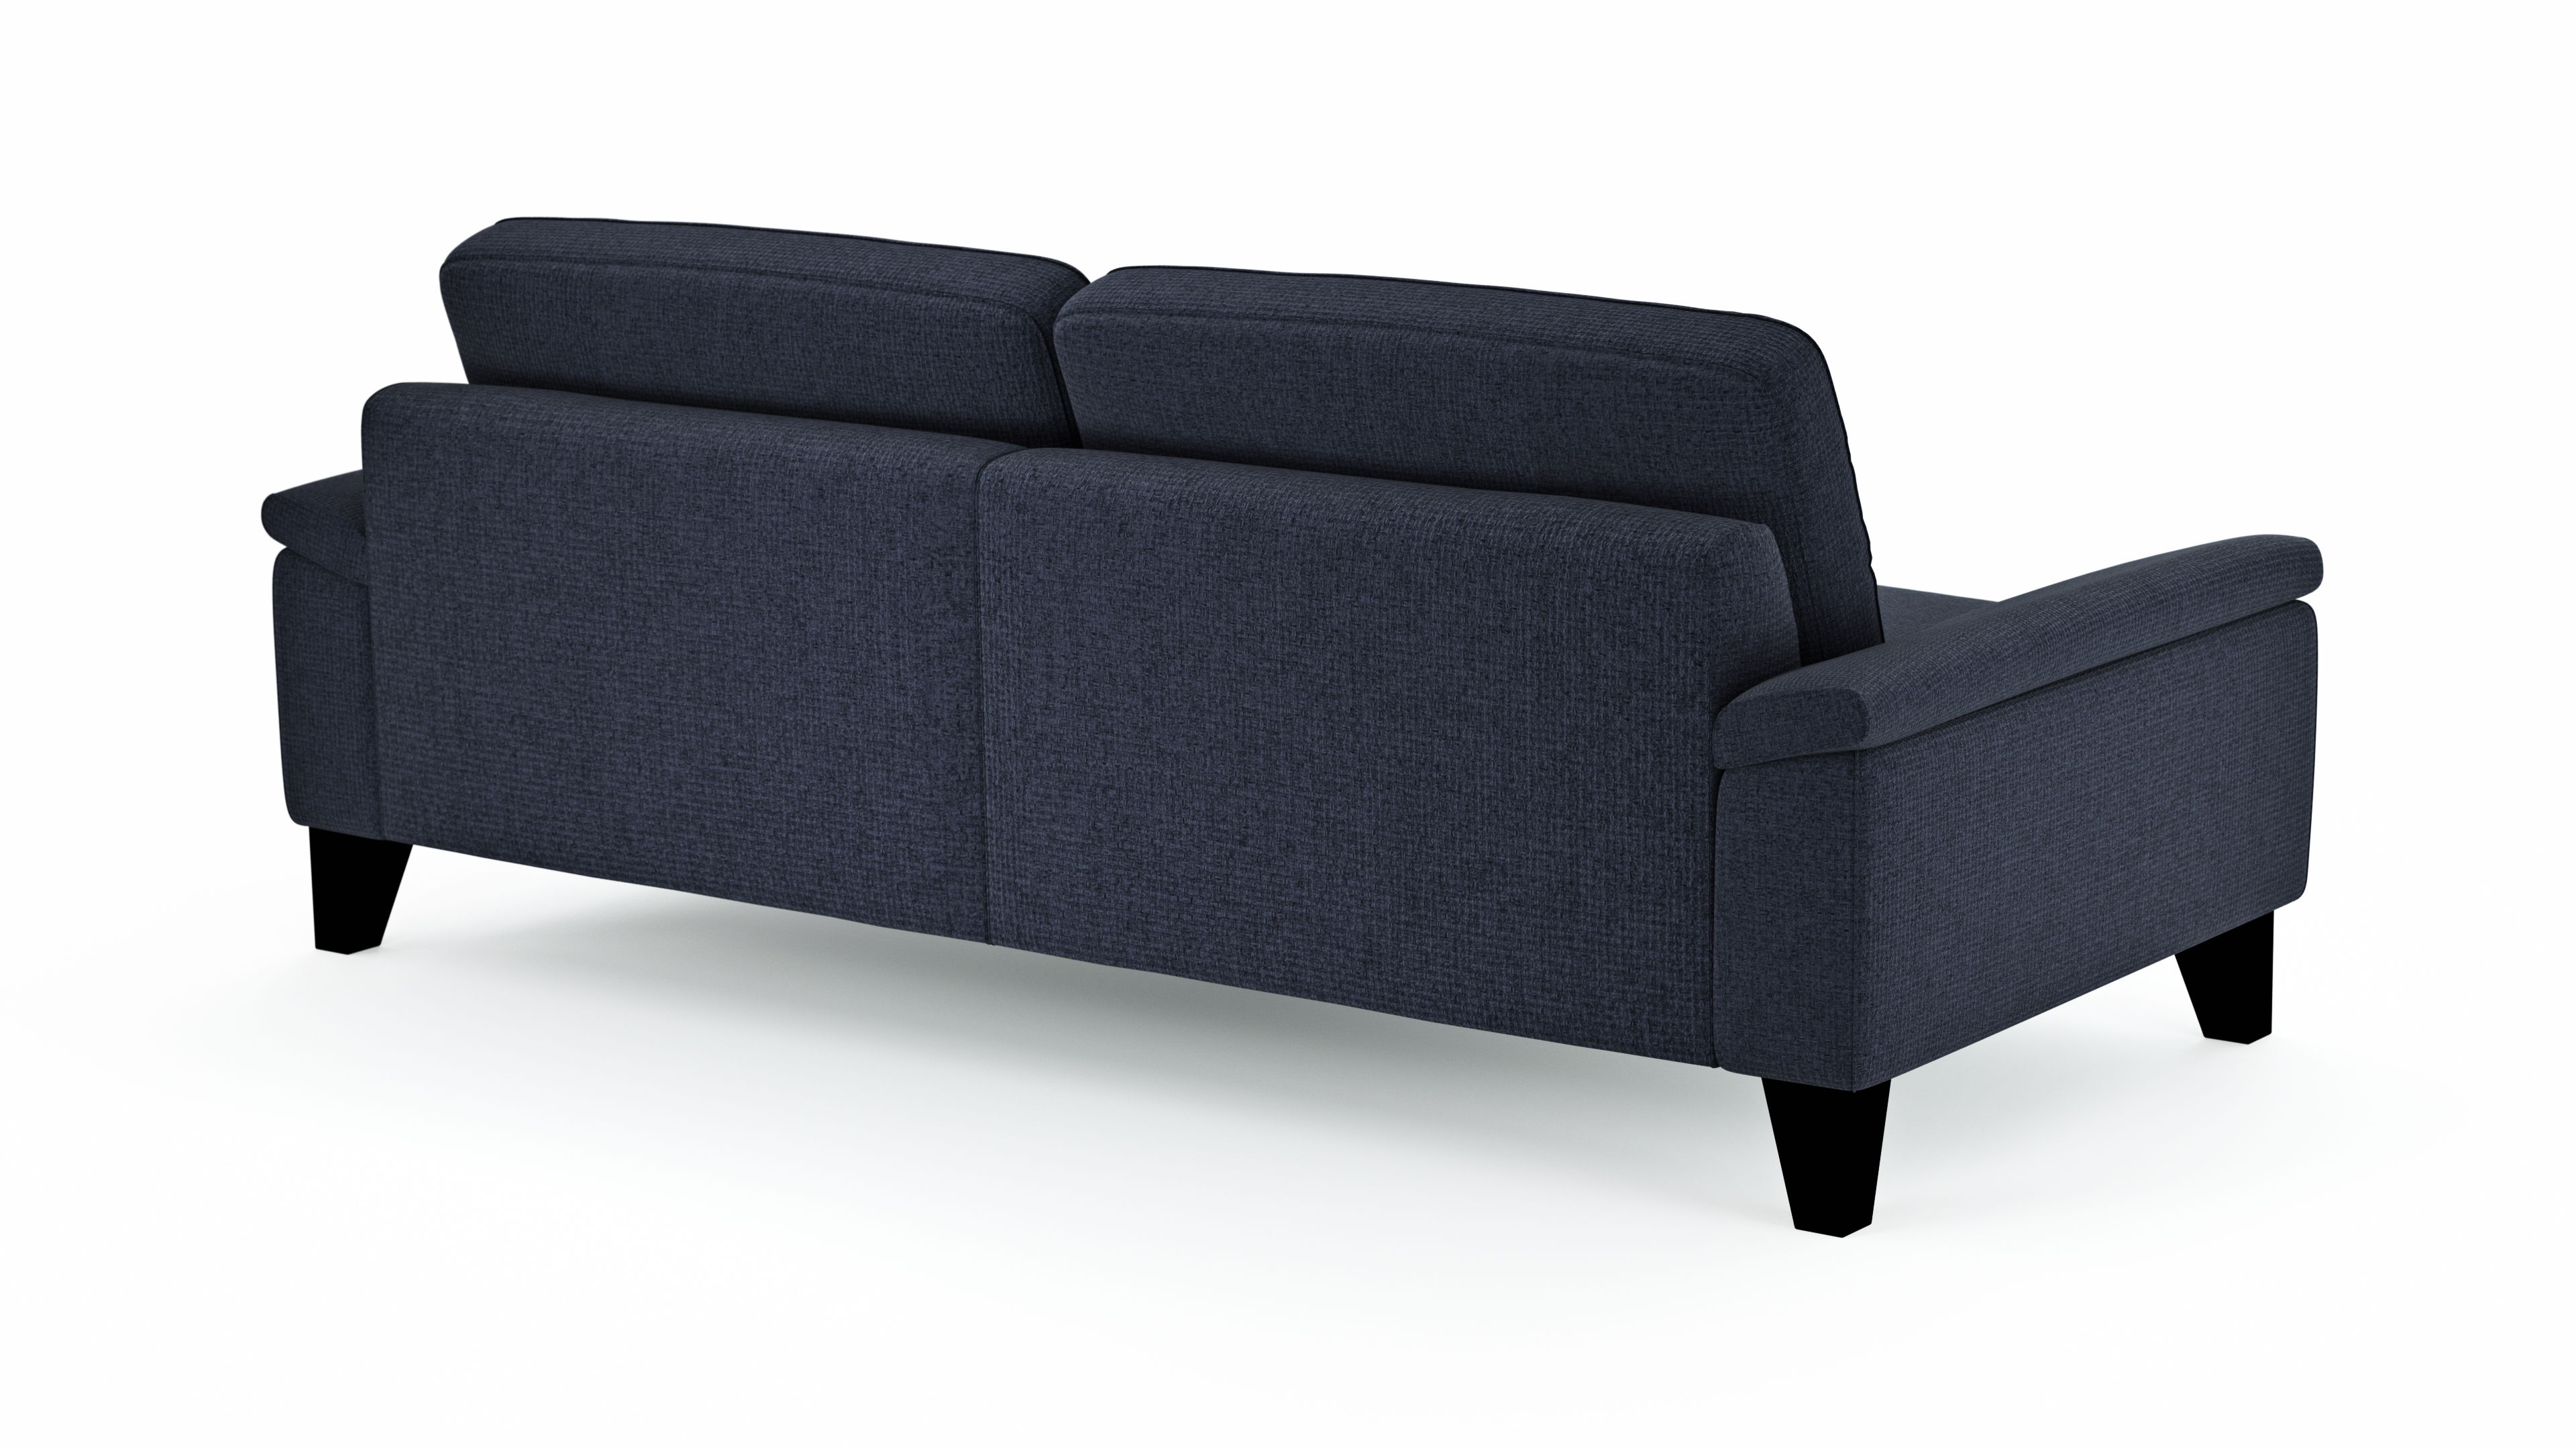 Global Family 3 Sitzer Sofa Oviedo freisteller 3 102294 | Homepoet